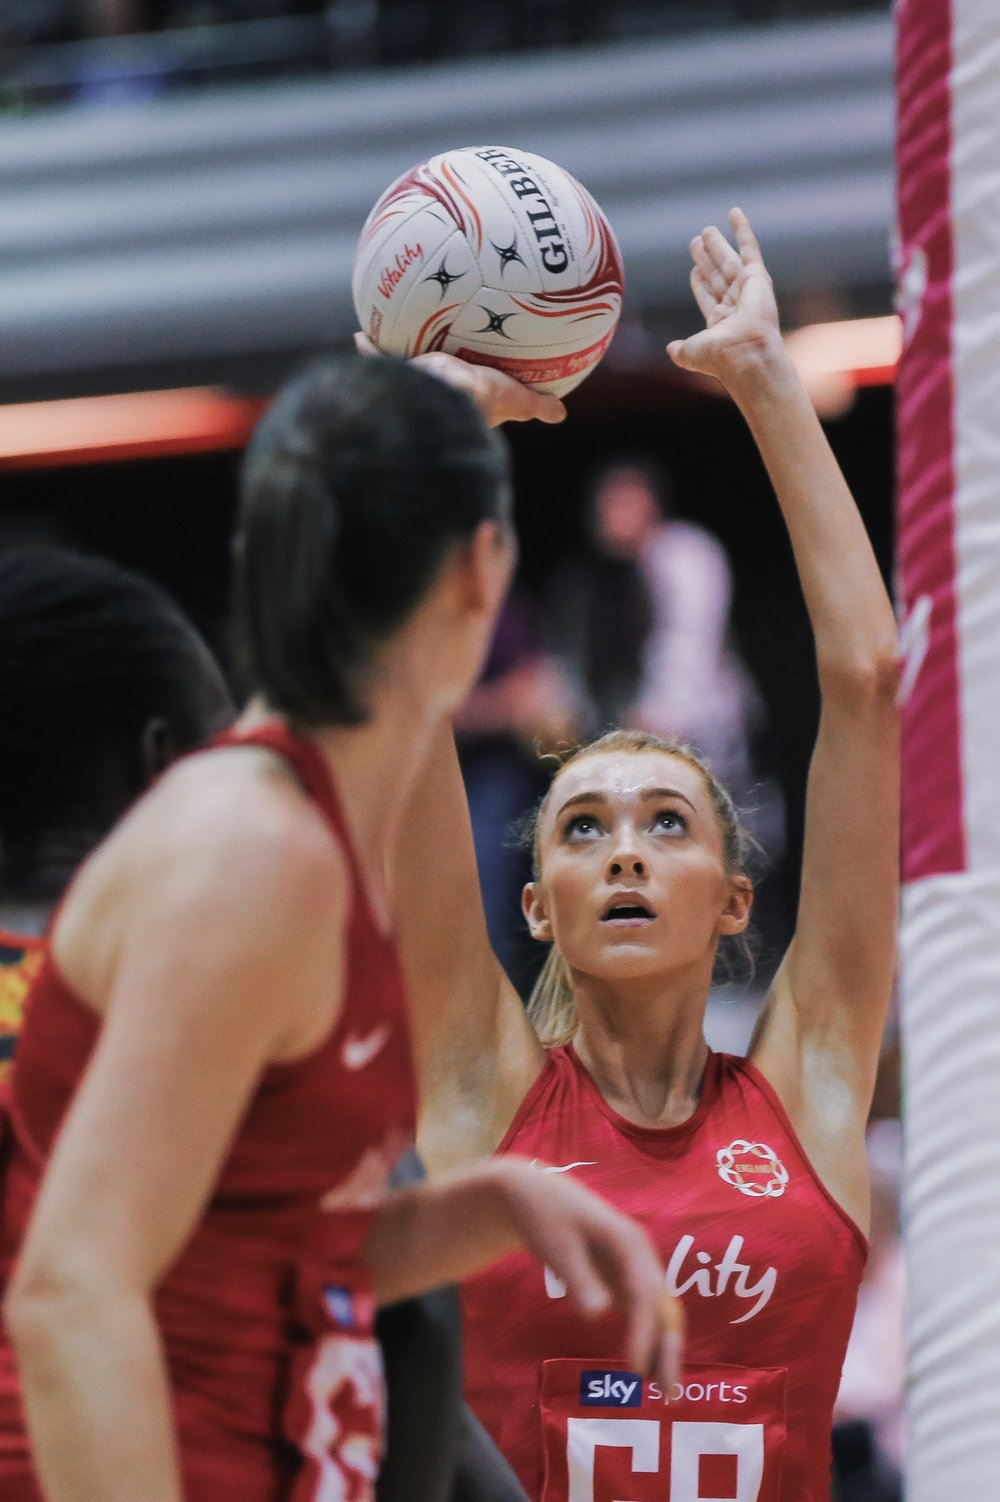 womens-netball-sport-england-uganda-international-series-21.jpg